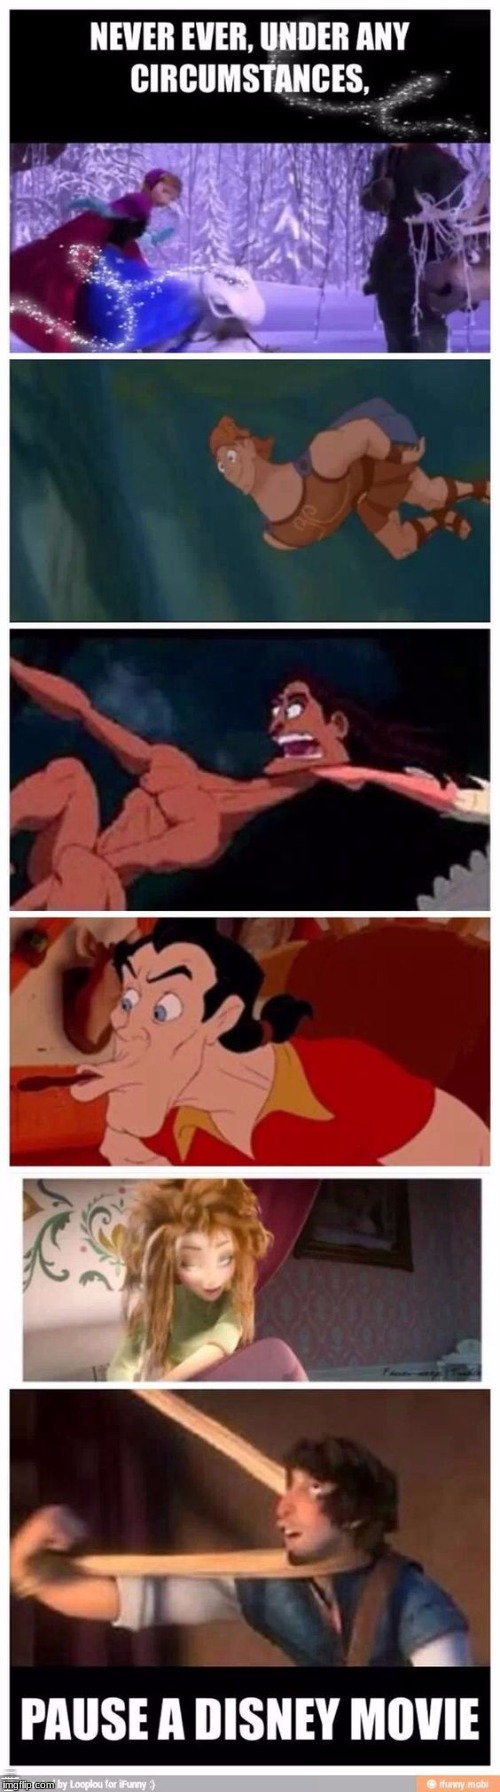 These are Disney's worst moments. trust me, if you tried to find more, you could | NEVER UNDER ANY CIRCUMSTANCES PAUSE A DISNEY MOVIE | image tagged in memes,dank memes,funny,deth_by_dodo,disney princesses,don't pause disney | made w/ Imgflip meme maker